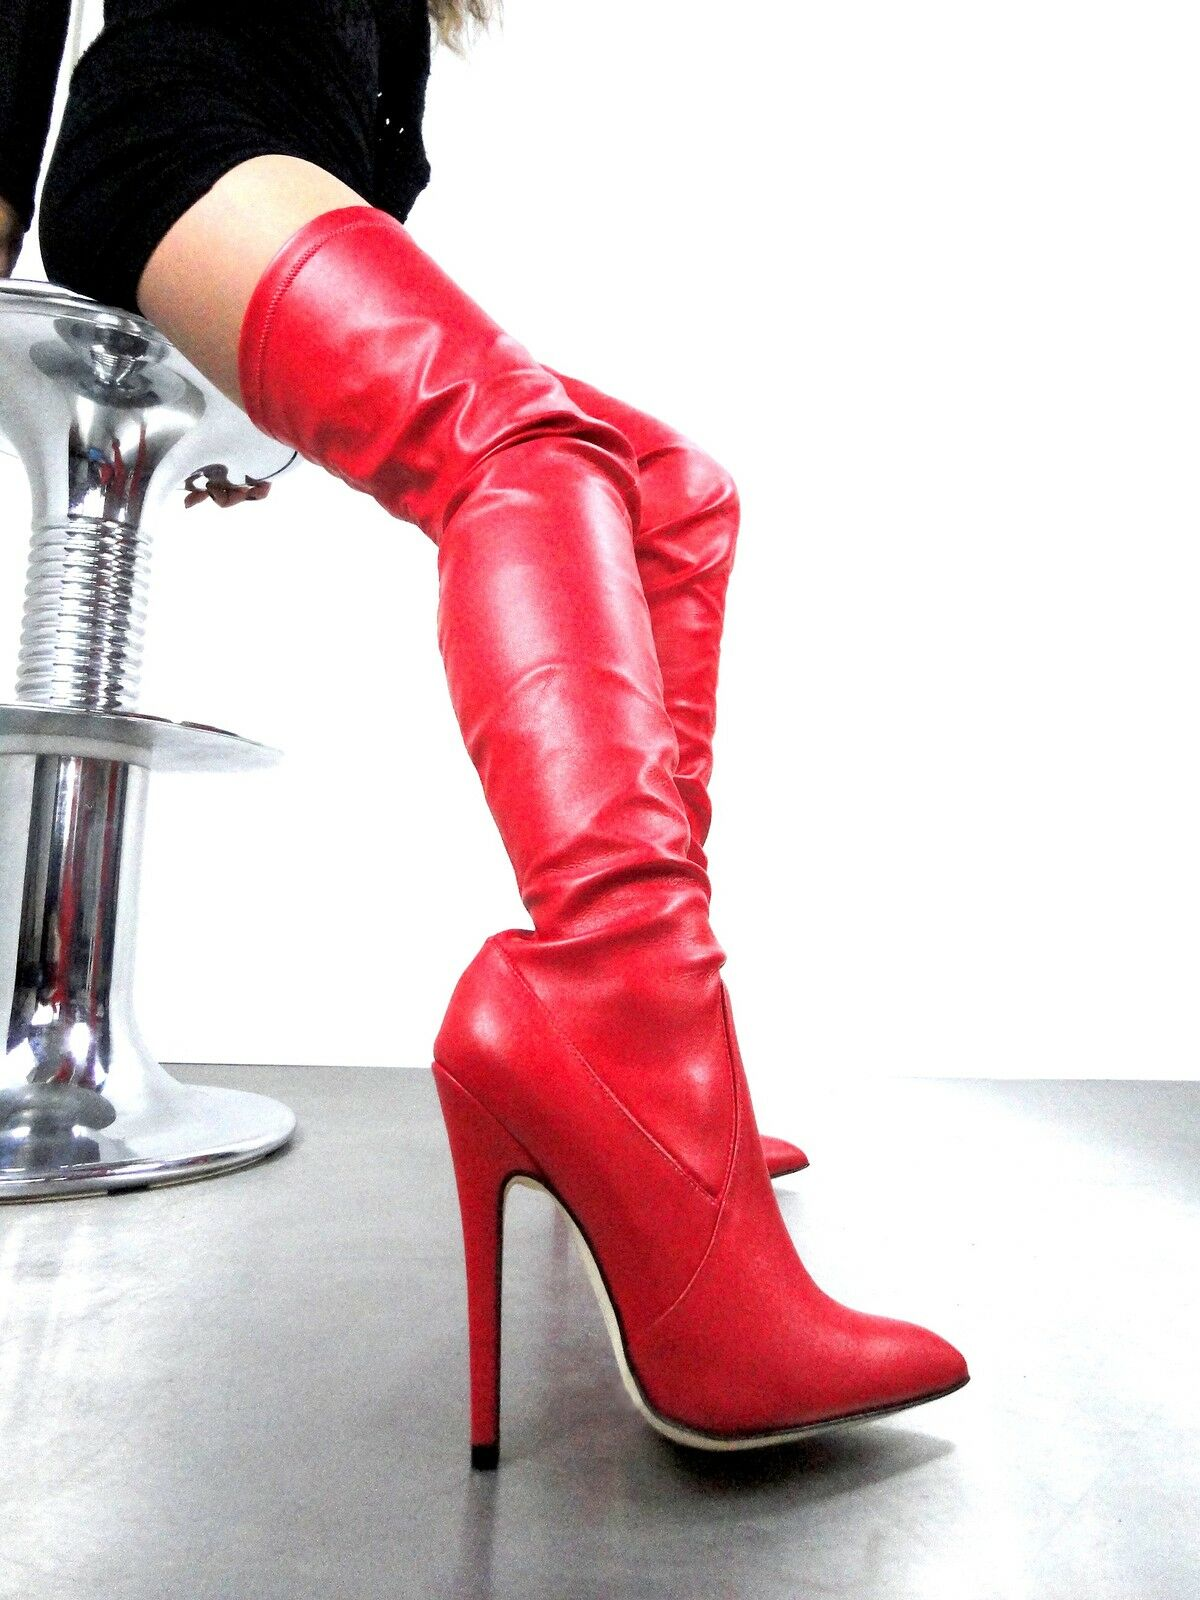 CQ STIEFEL COUTURE EXTREME OVERKNEE STIEFEL STIEFEL STIEFEL CQ STRETCH LEATHER ROT 40 b42baf